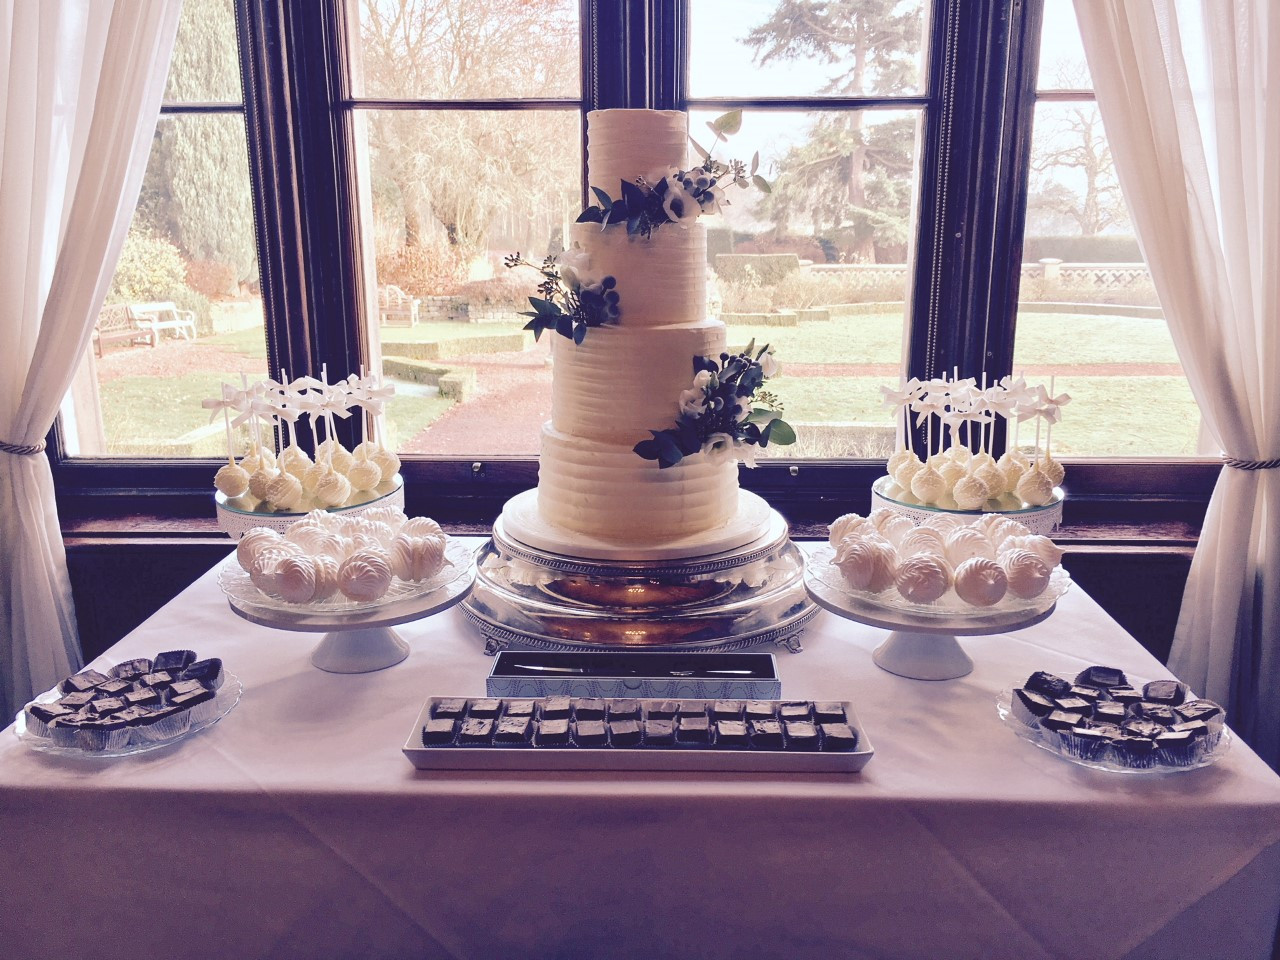 Ganache Ripple Wedding cake and mirrowed dessert table with cakepops, meringue kisses and cakepops